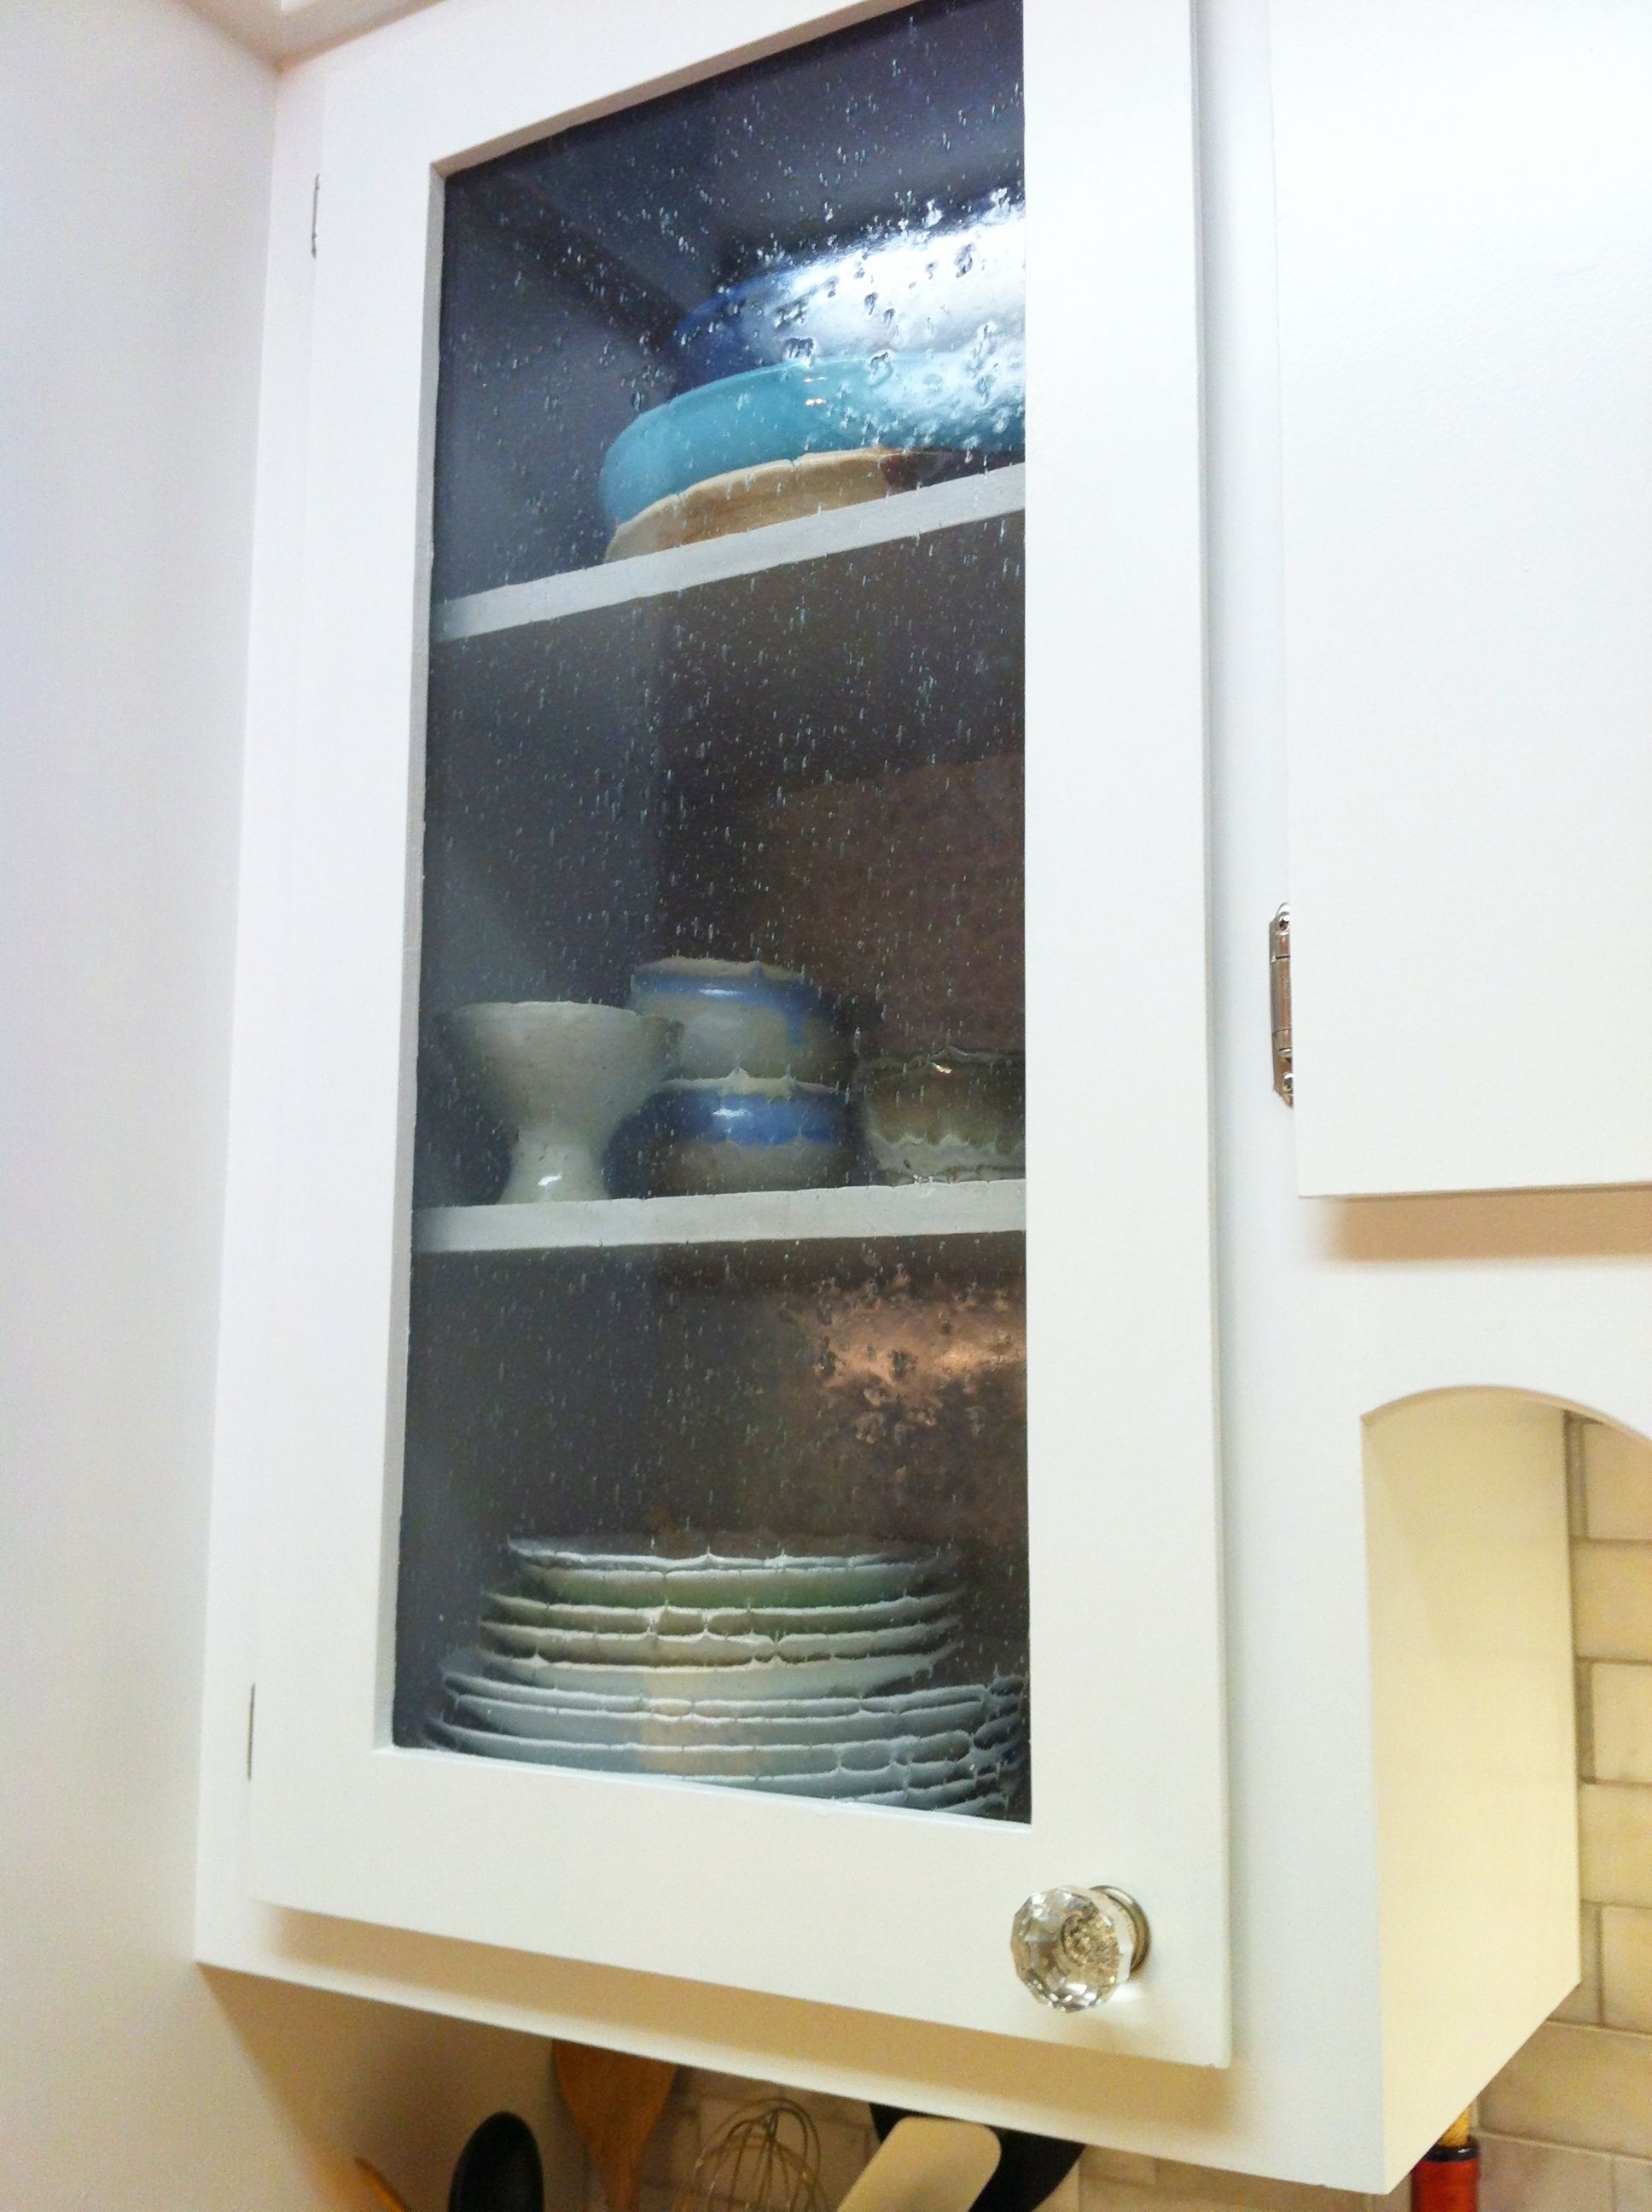 New Kitchen Cabinet Doors With Seeded Glass Glass